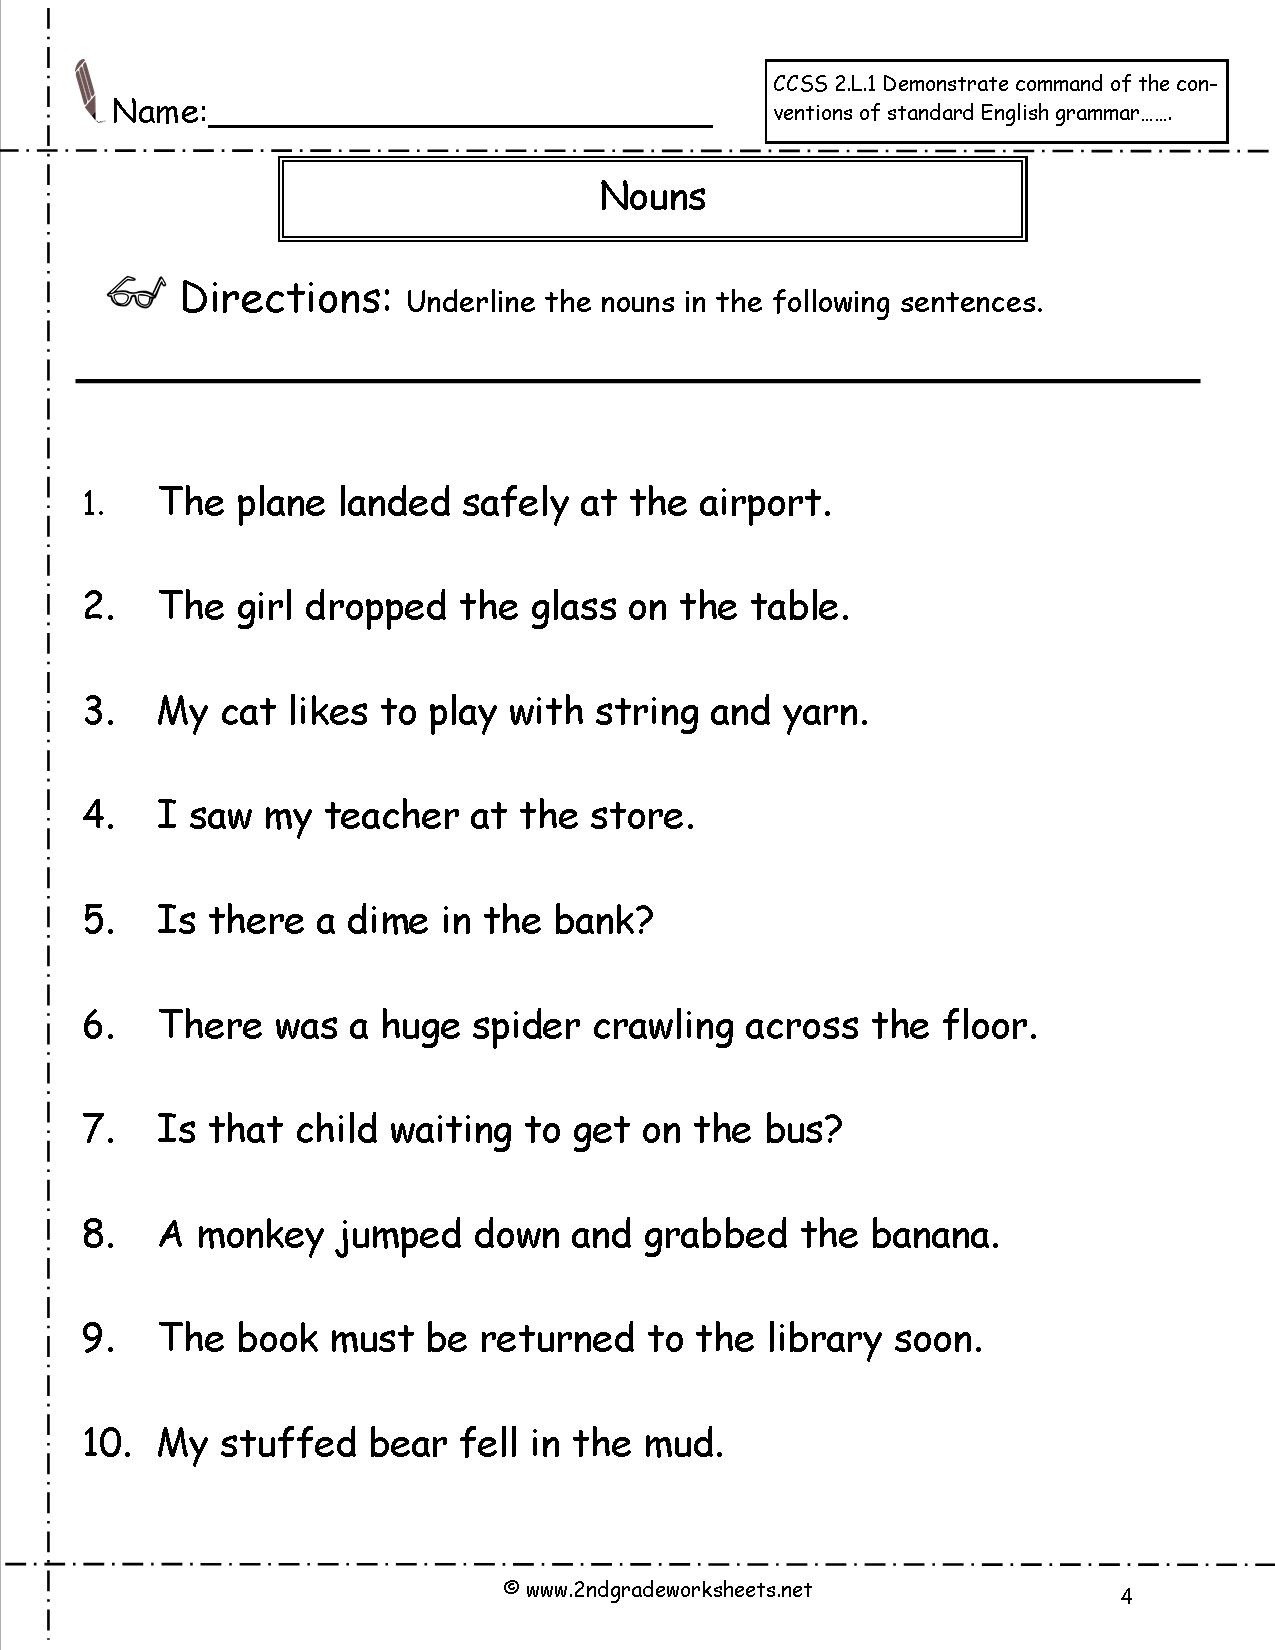 Second Grade Pronoun Worksheets Pronoun Worksheets 2nd